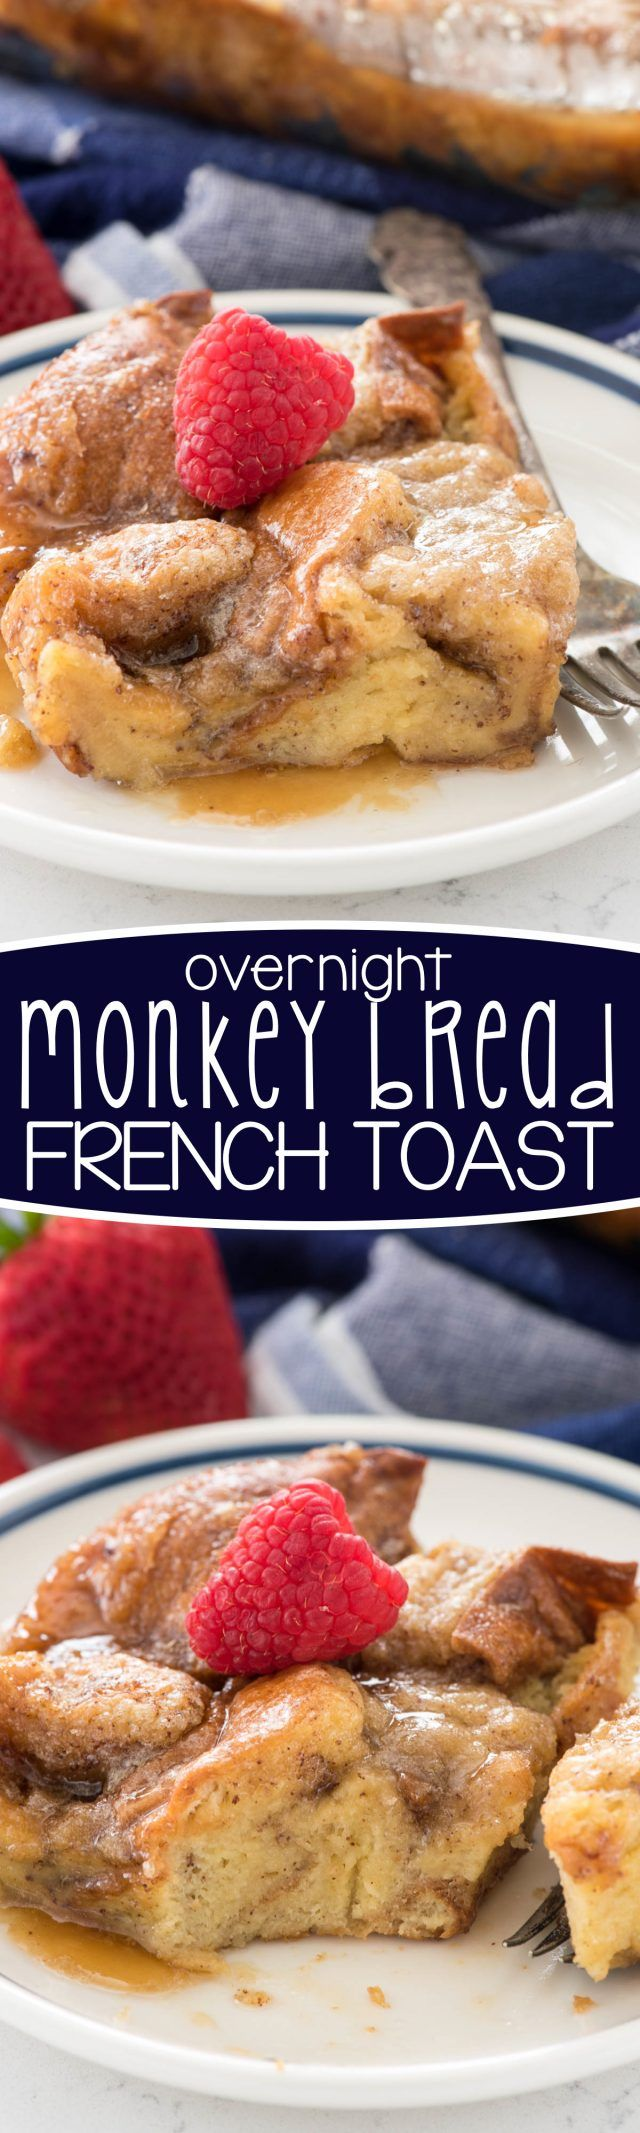 Overnight Monkey Bread French Toast Casserole - this easy breakfast recipe is perfect for any brunch! My family loved this casserole!